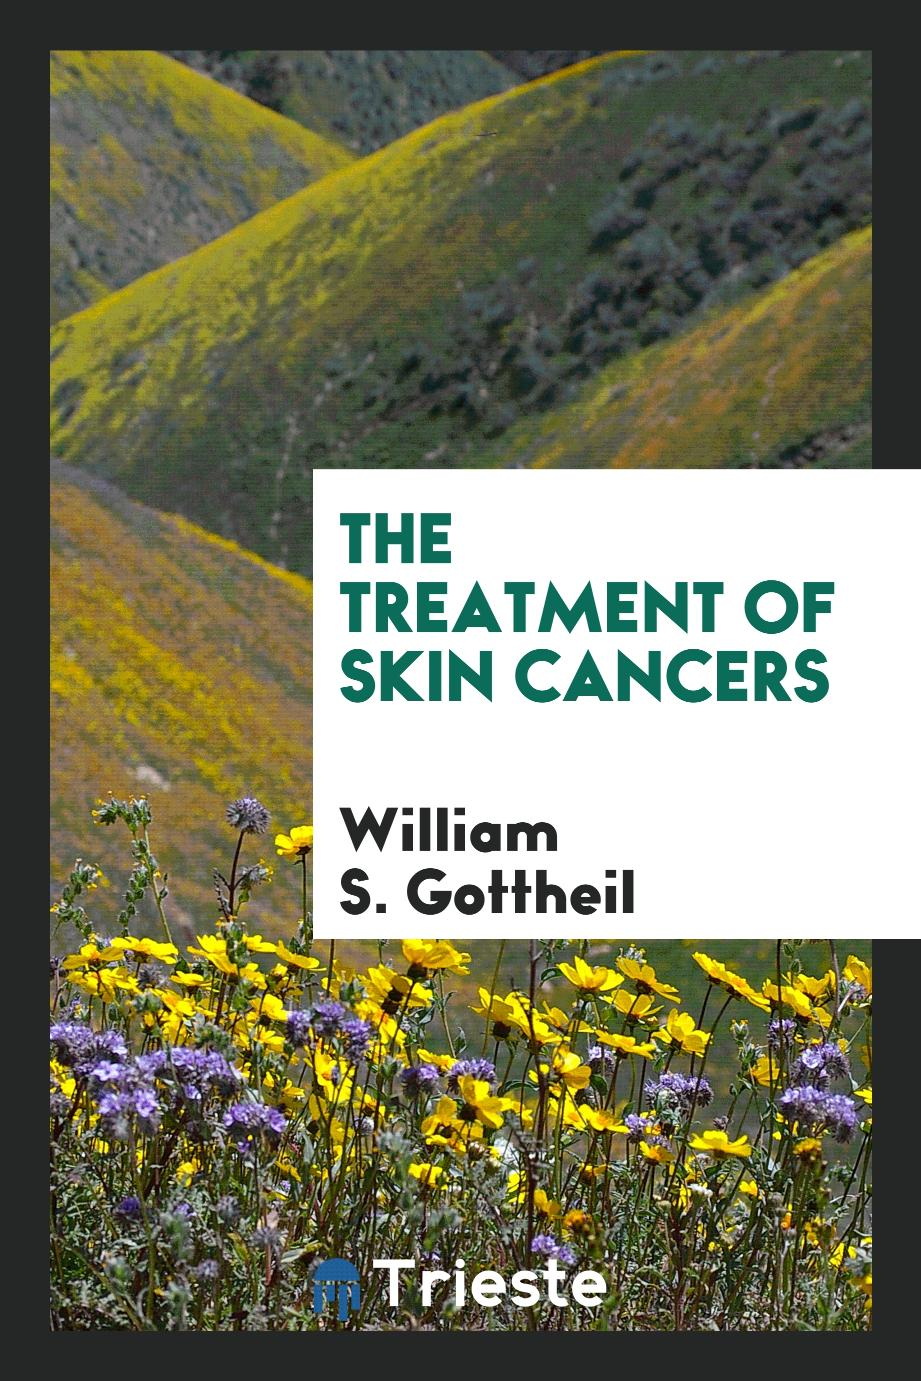 The Treatment of skin cancers